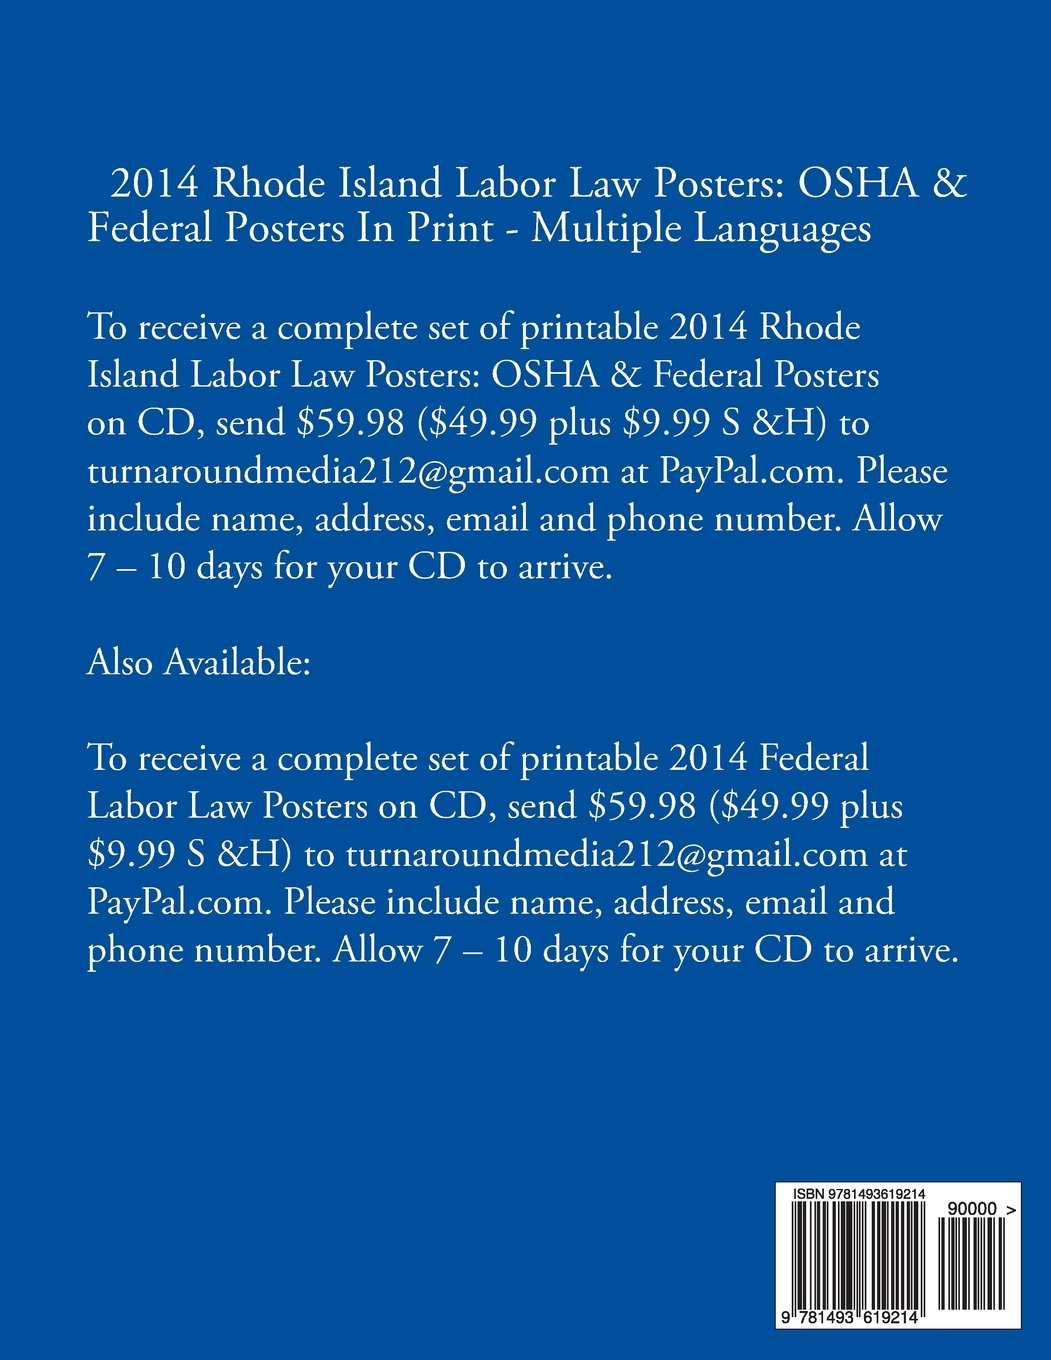 2014 Rhode Island Labor Law Posters: OSHA & Federal Posters In Print - Multiple Languages by CreateSpace Independent Publishing Platform